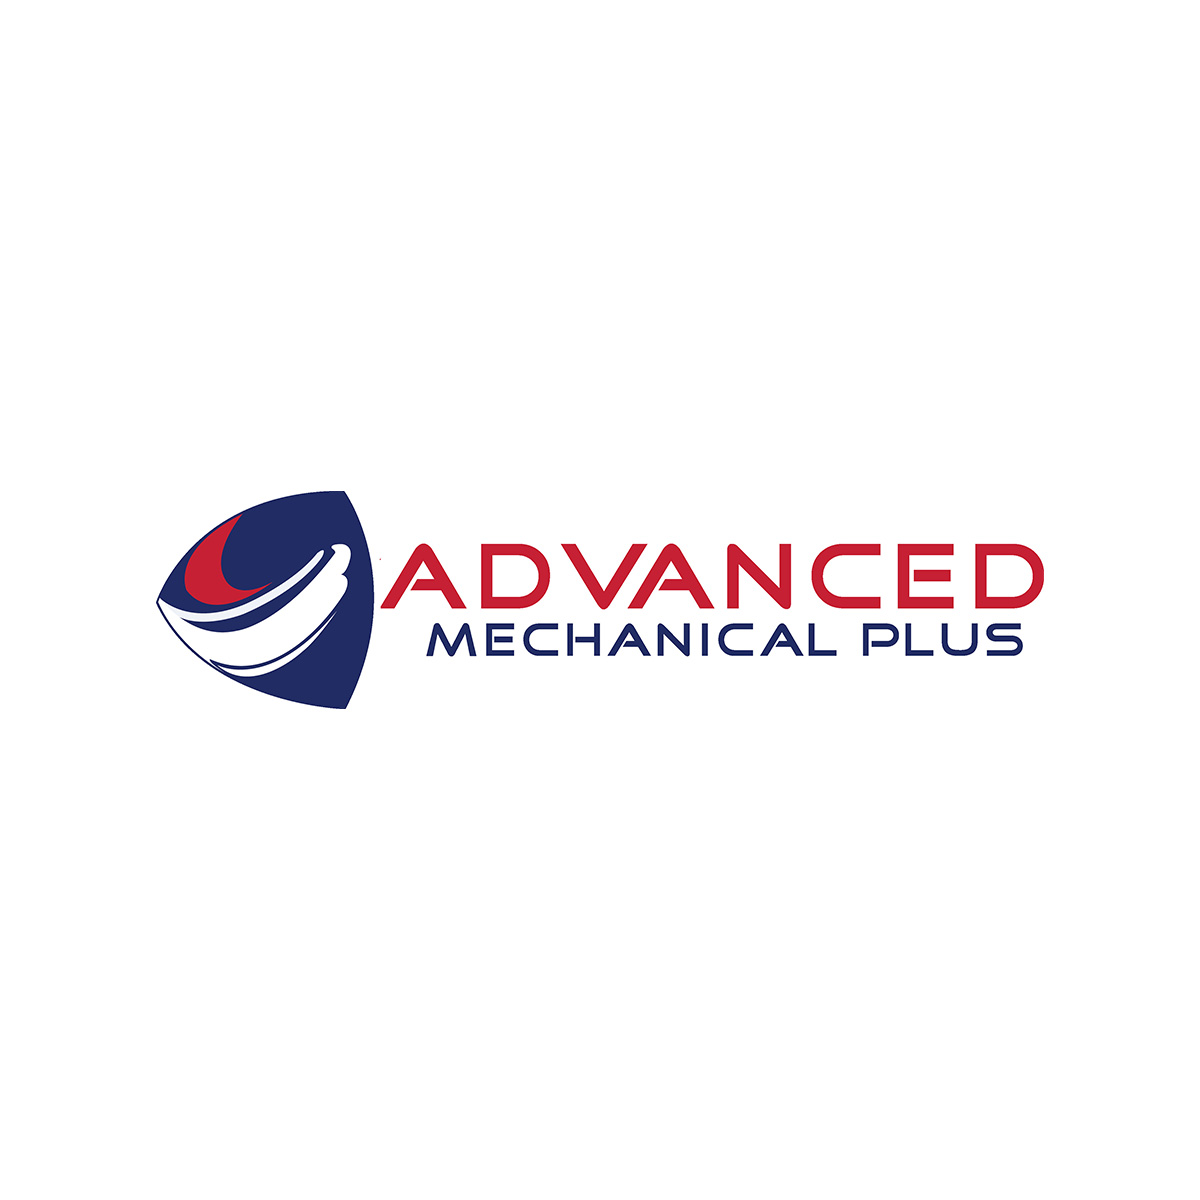 Advanced Mechanical Plus Full Color Logo